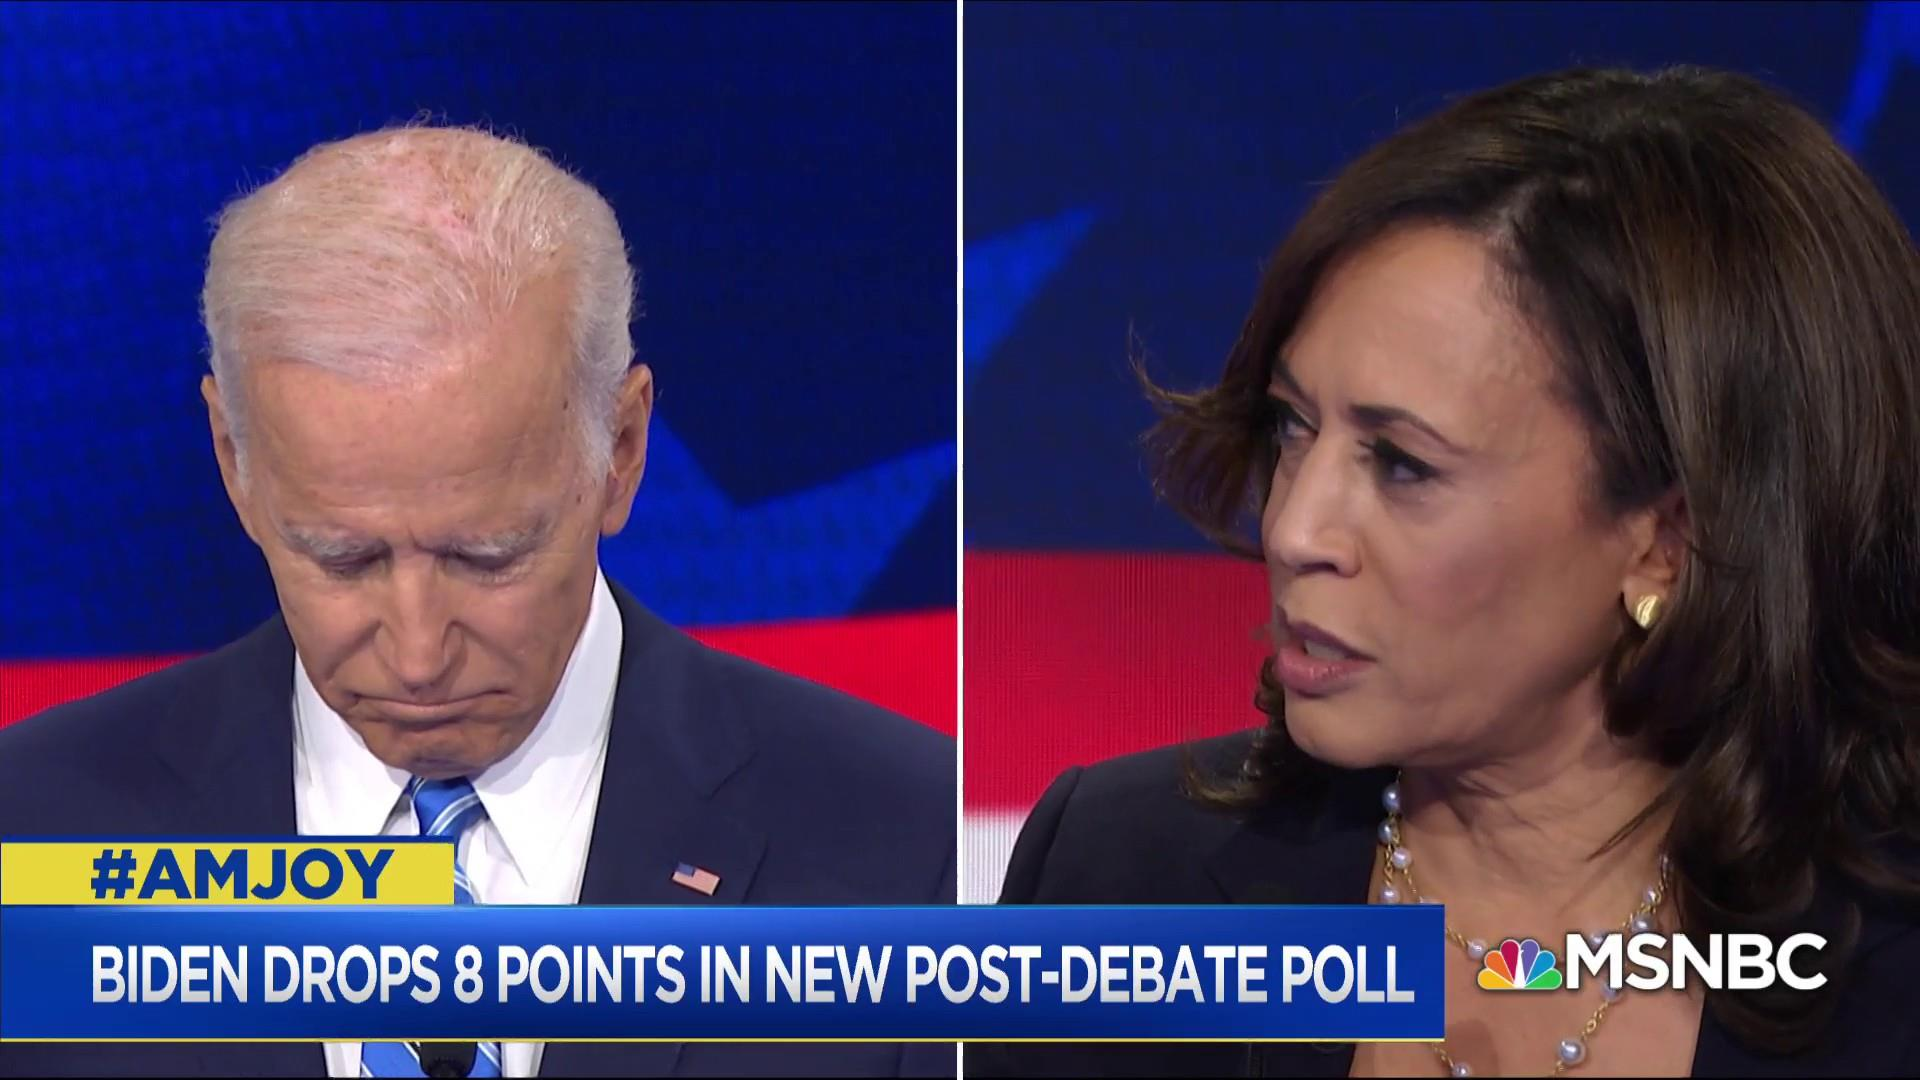 Joe Biden and Kamala Harris spar over busing and school desegregation